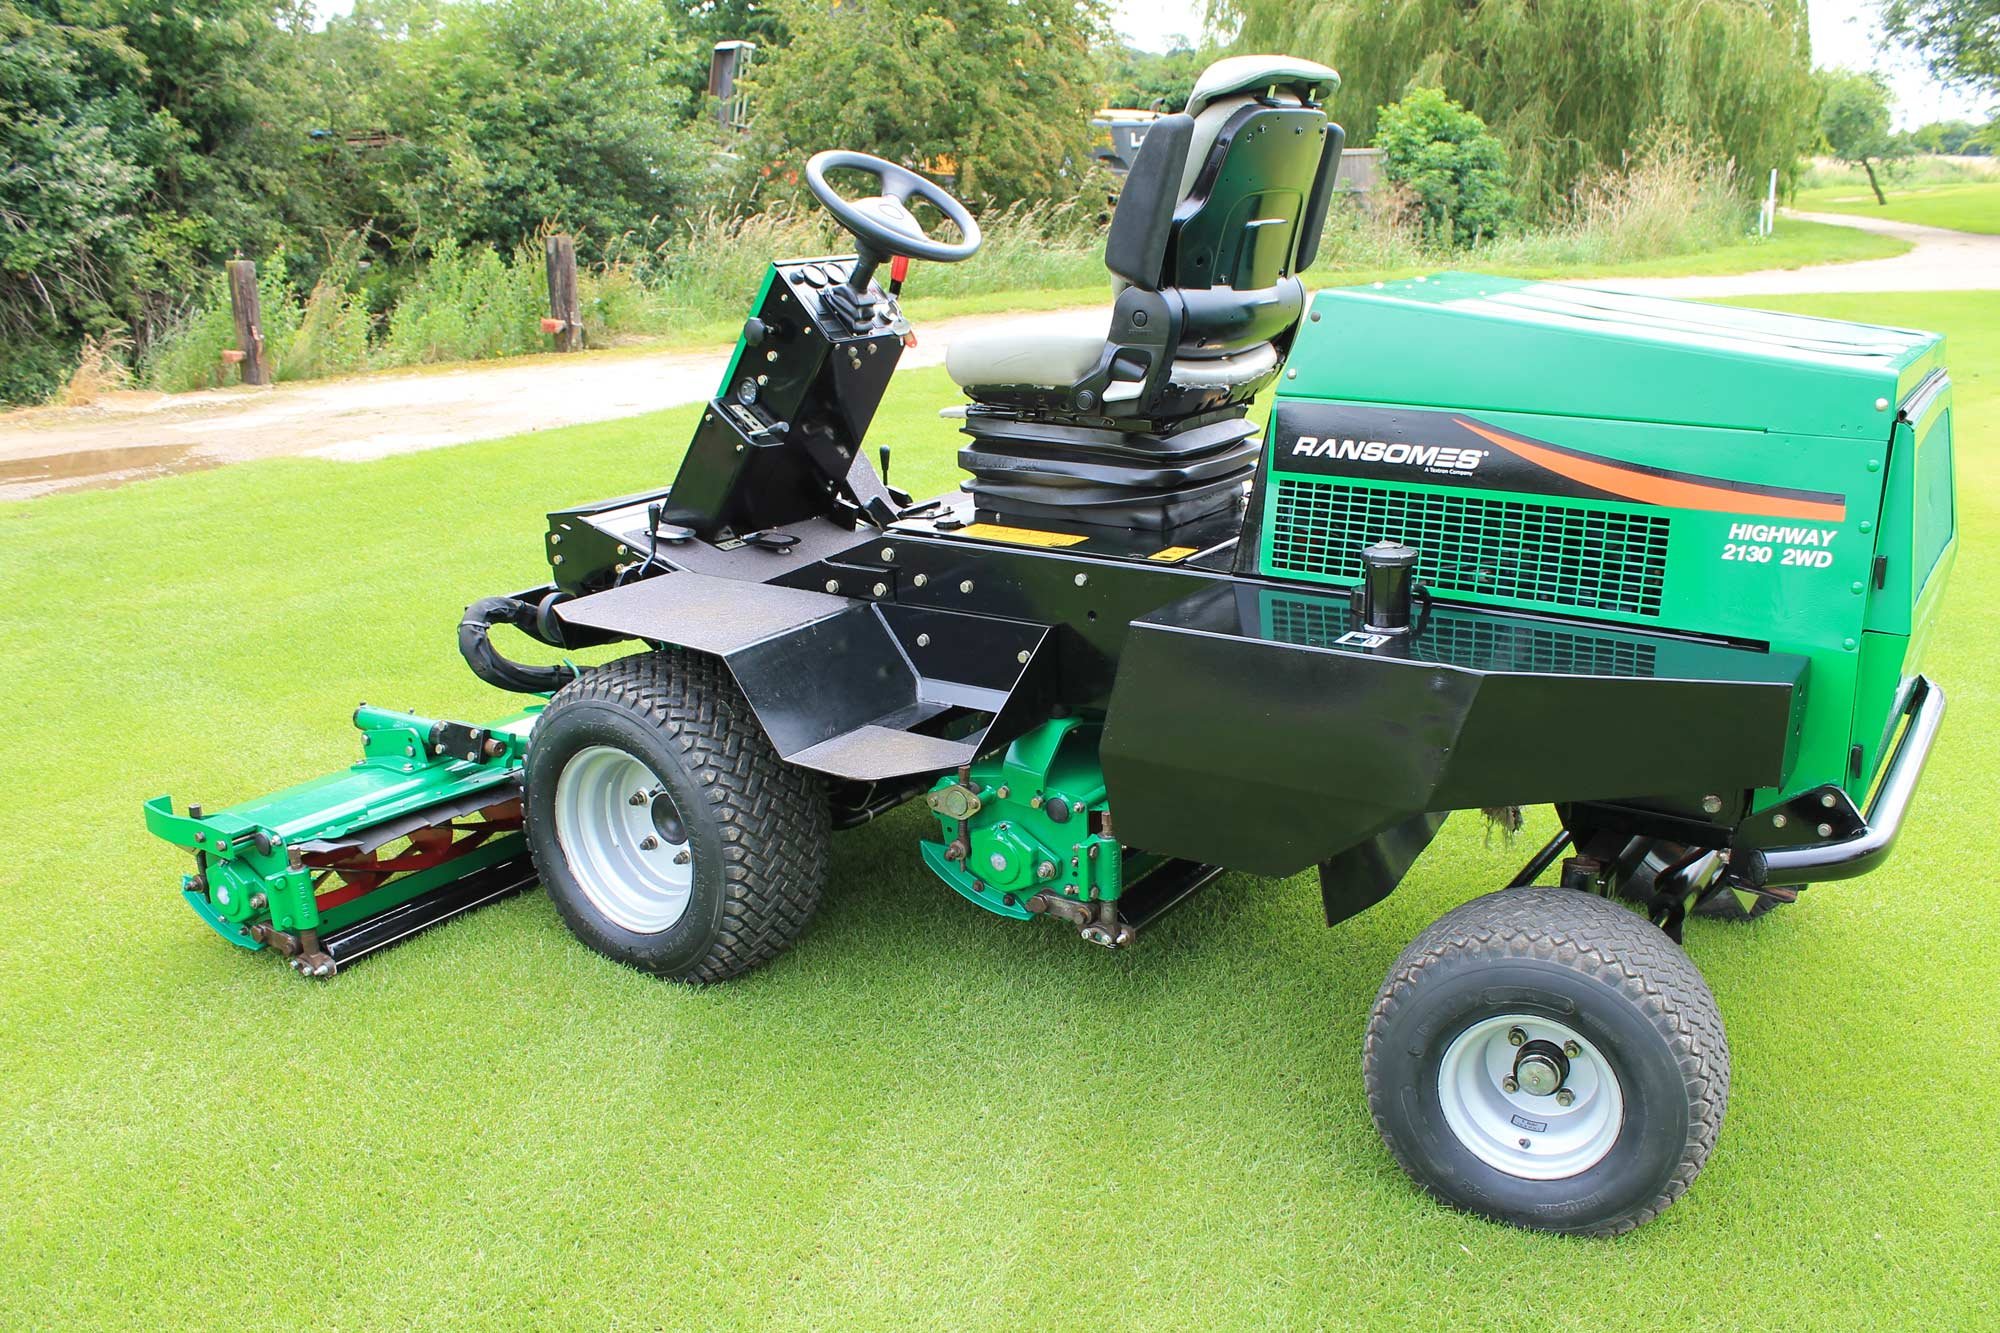 Ransomes mower For Sale uk knife control uk